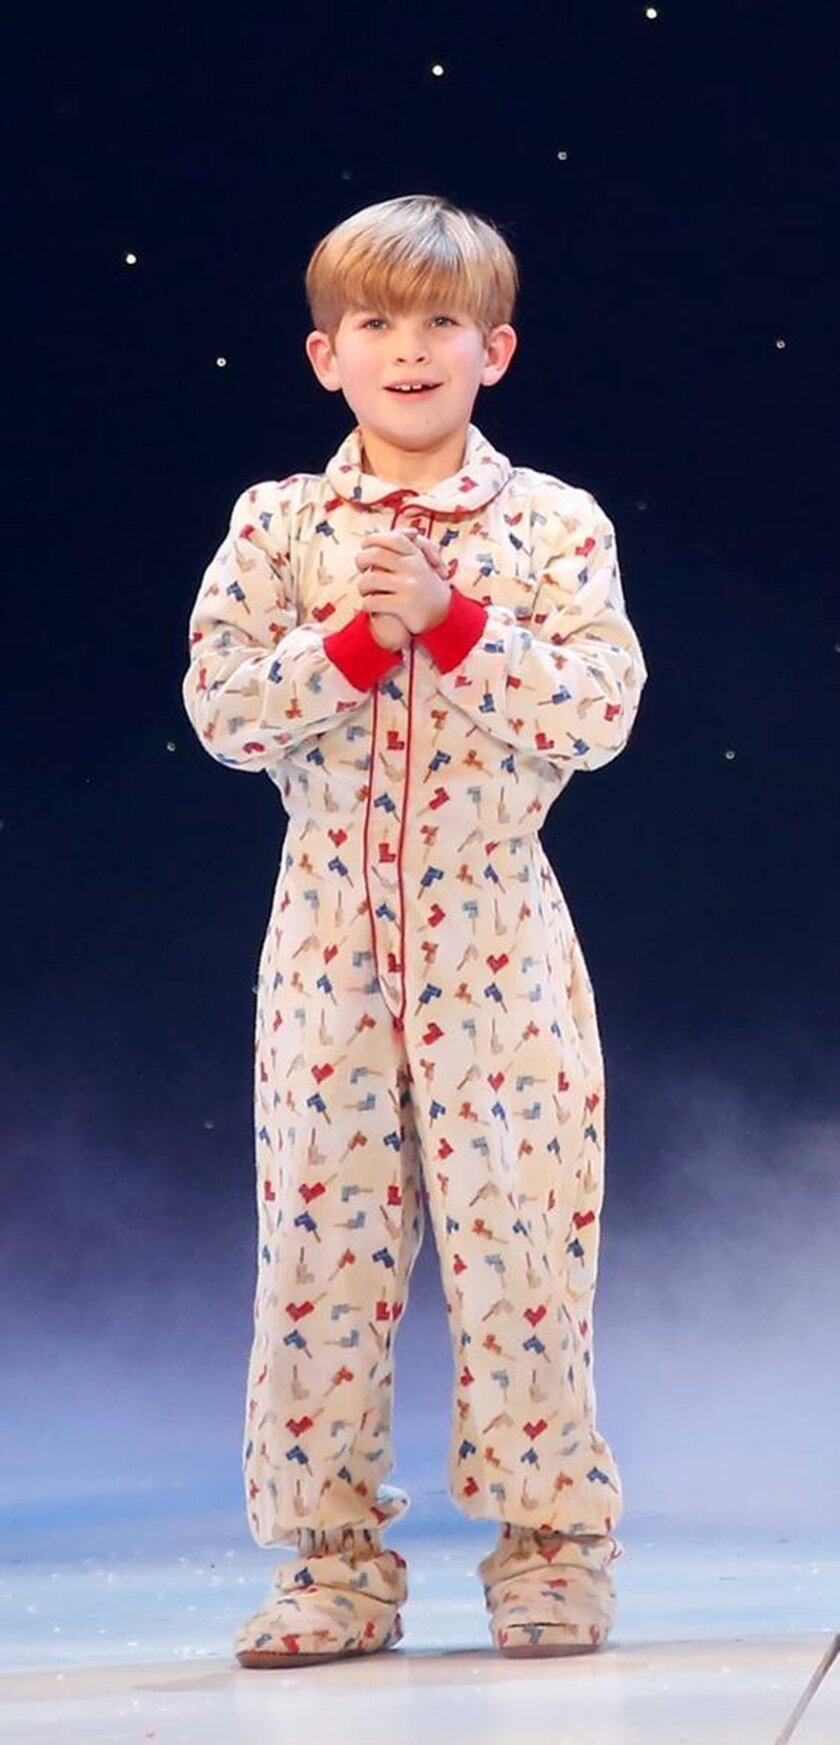 """Noah Baird as Randy Parker in """"A Christmas Story, The Musical,"""" which will play at New York's Madison Square Garden in December. CREDIT: Carol Rosegg"""